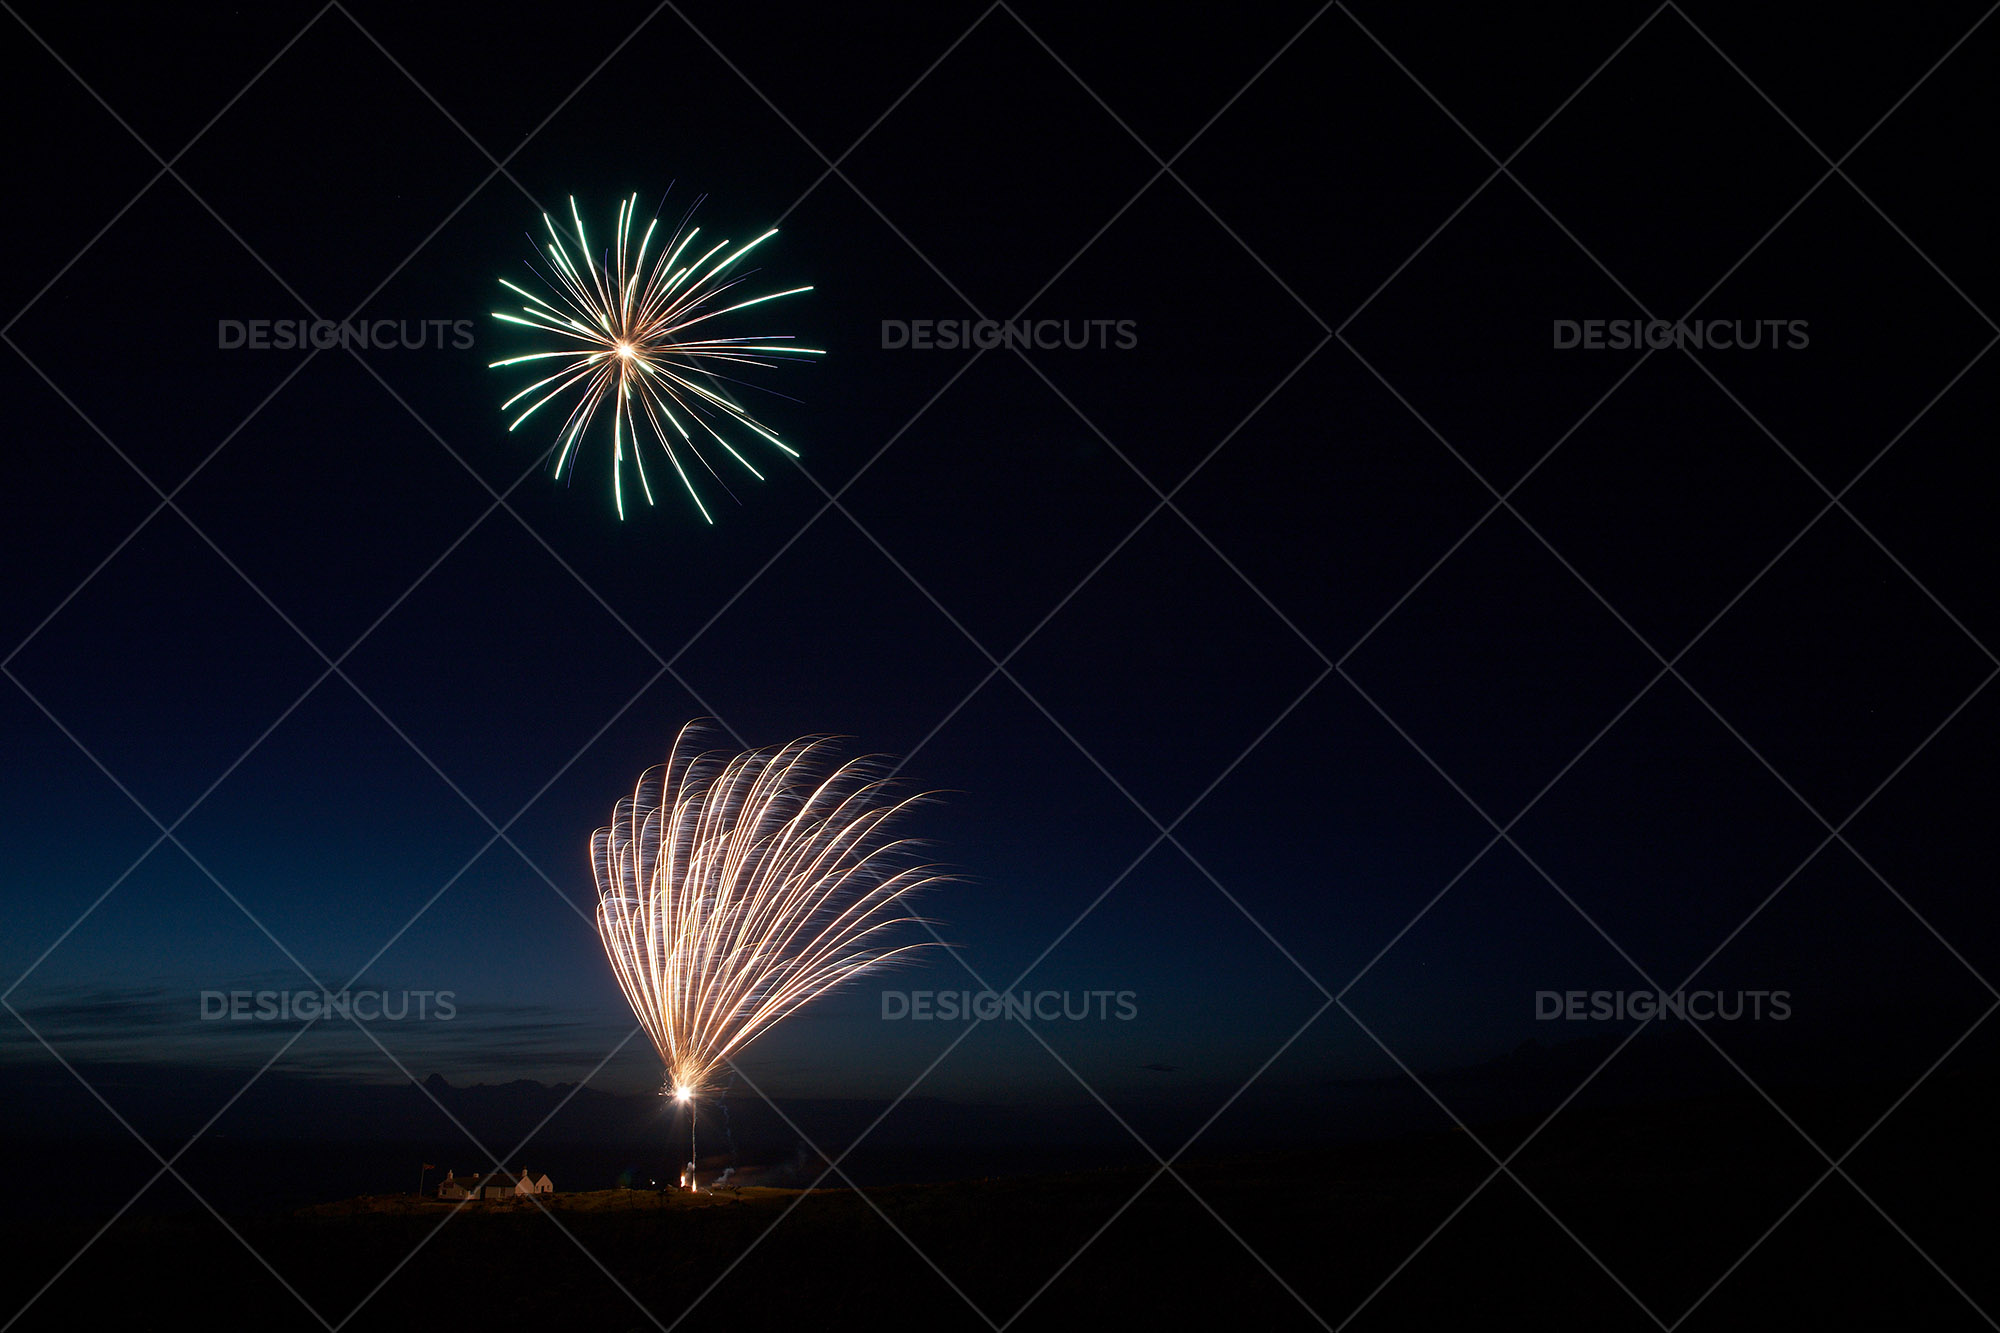 Motion Blurred Fireworks Light Up Night Sky 6